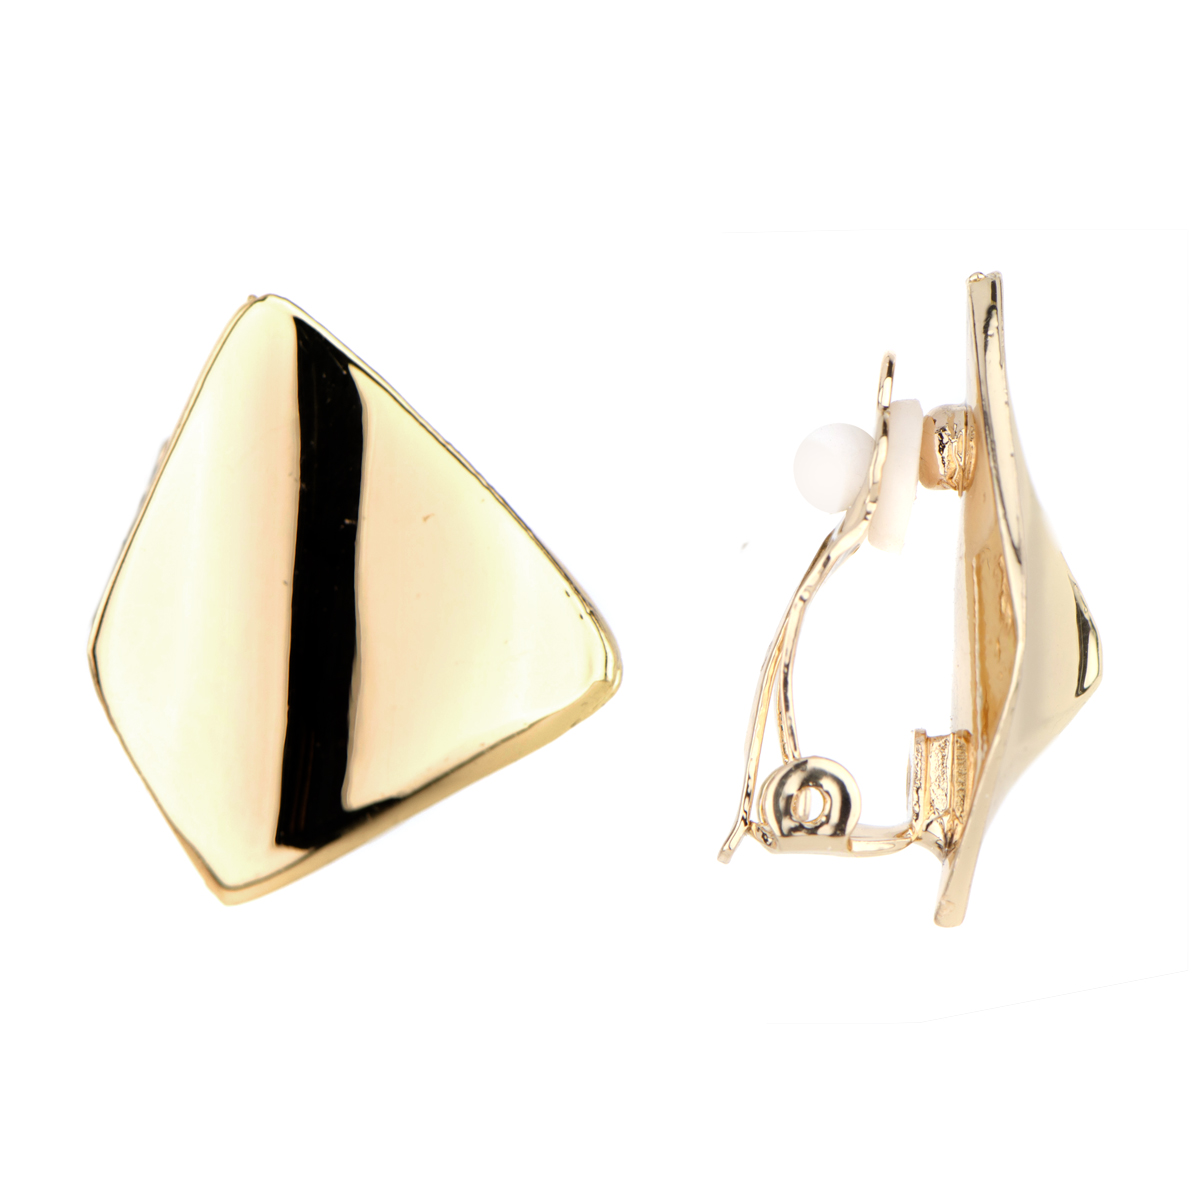 clip earrings lenau0027s goldtone modern clip on earrings. roll off image to close zoom window iqffdgw